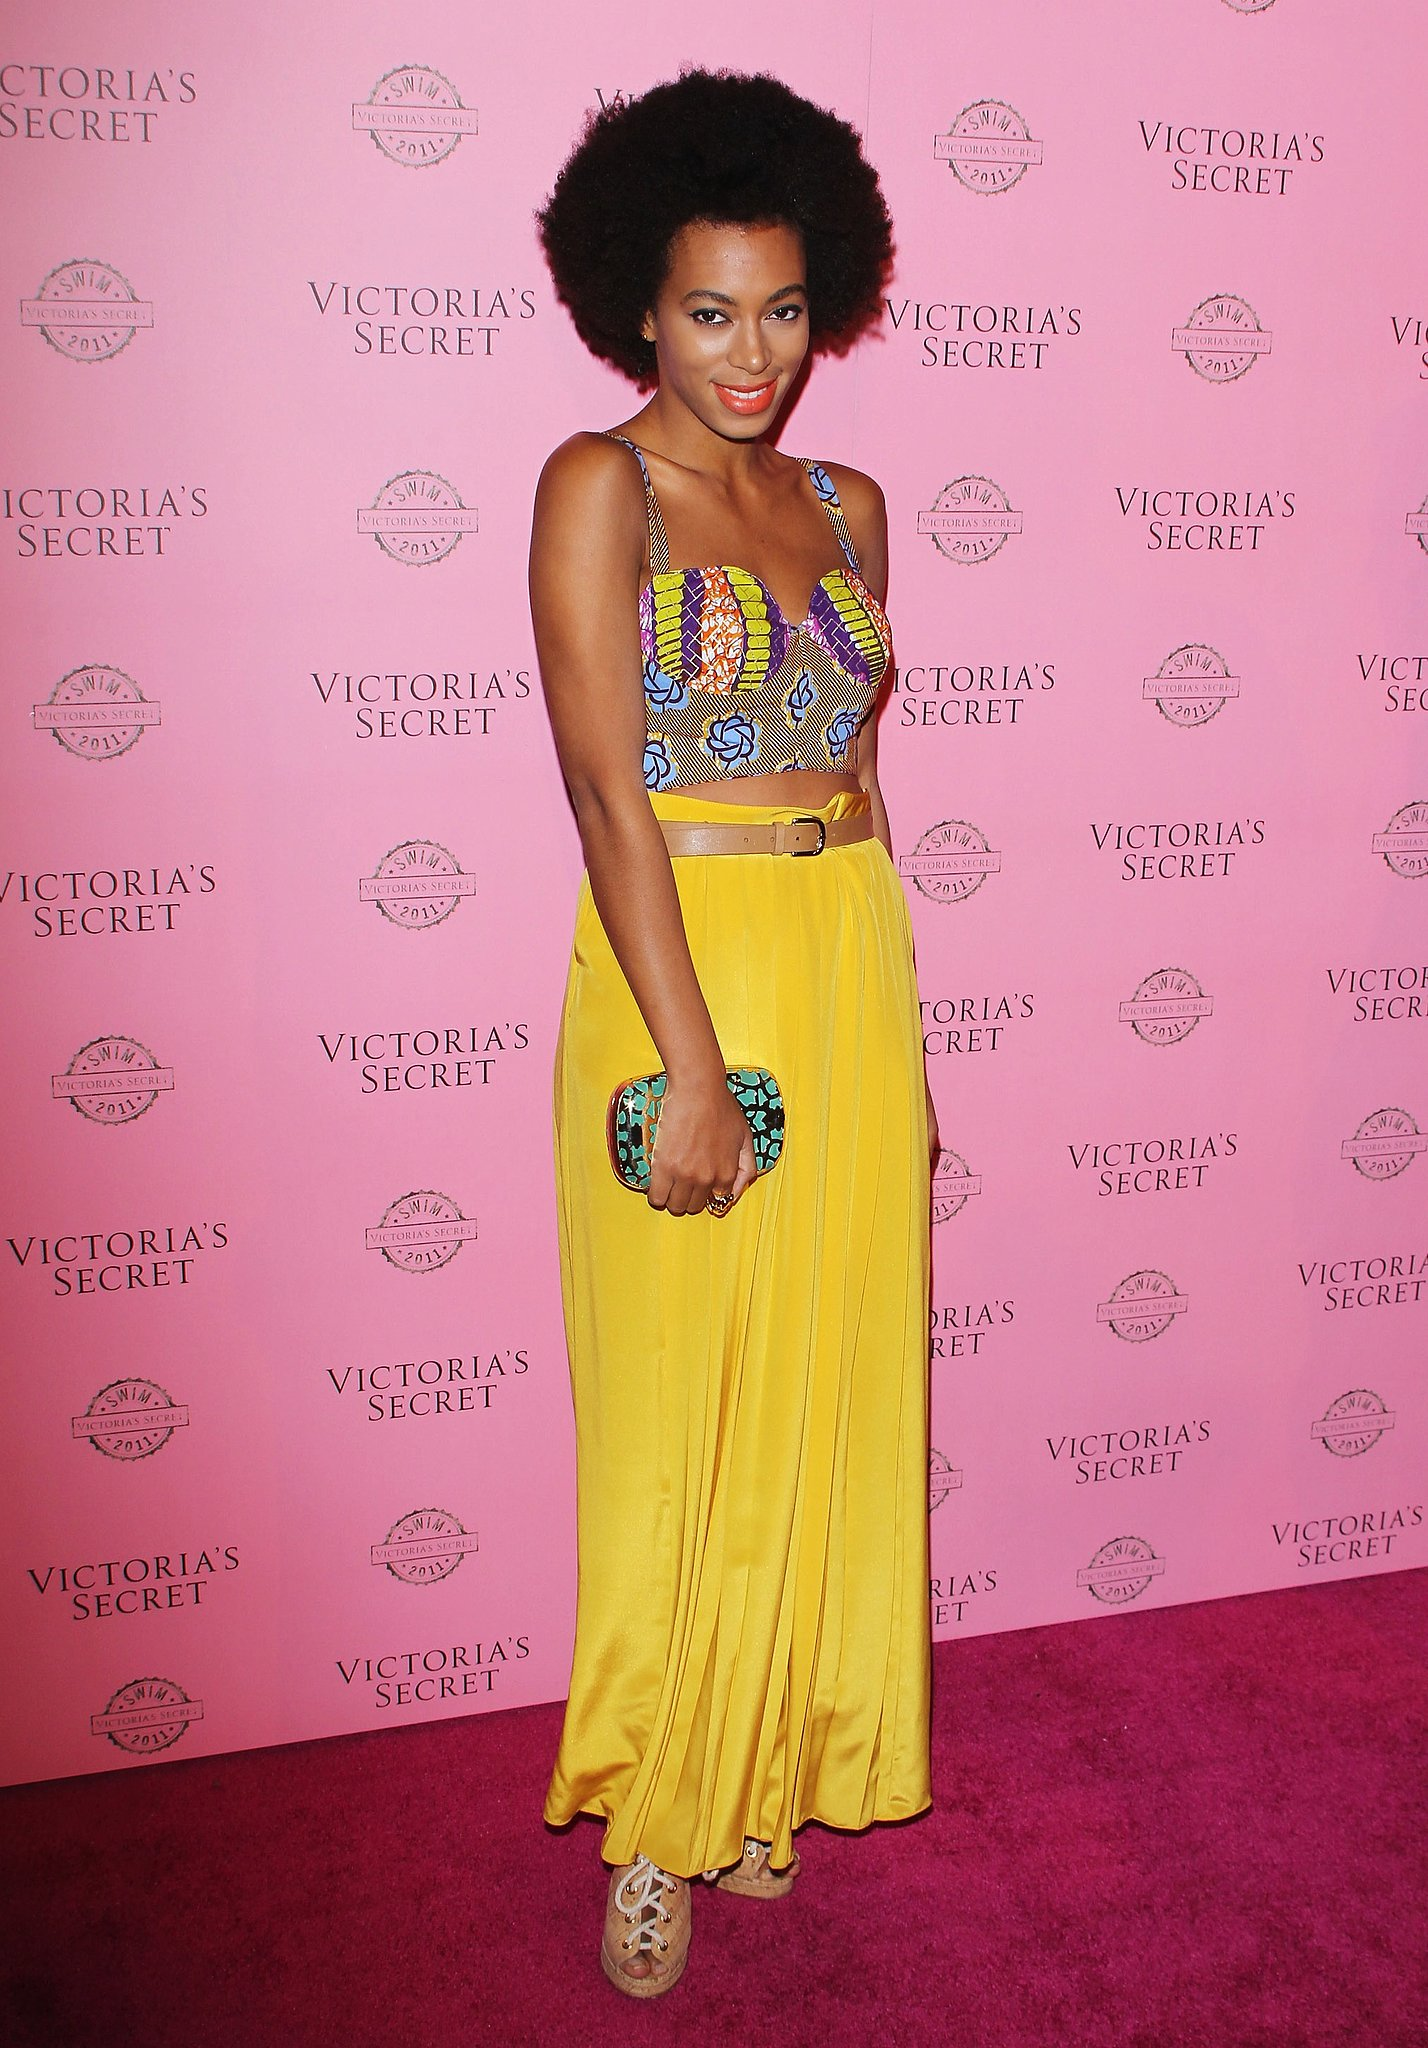 Solange-ahead-crop-top-trend-donning-printed-bustier